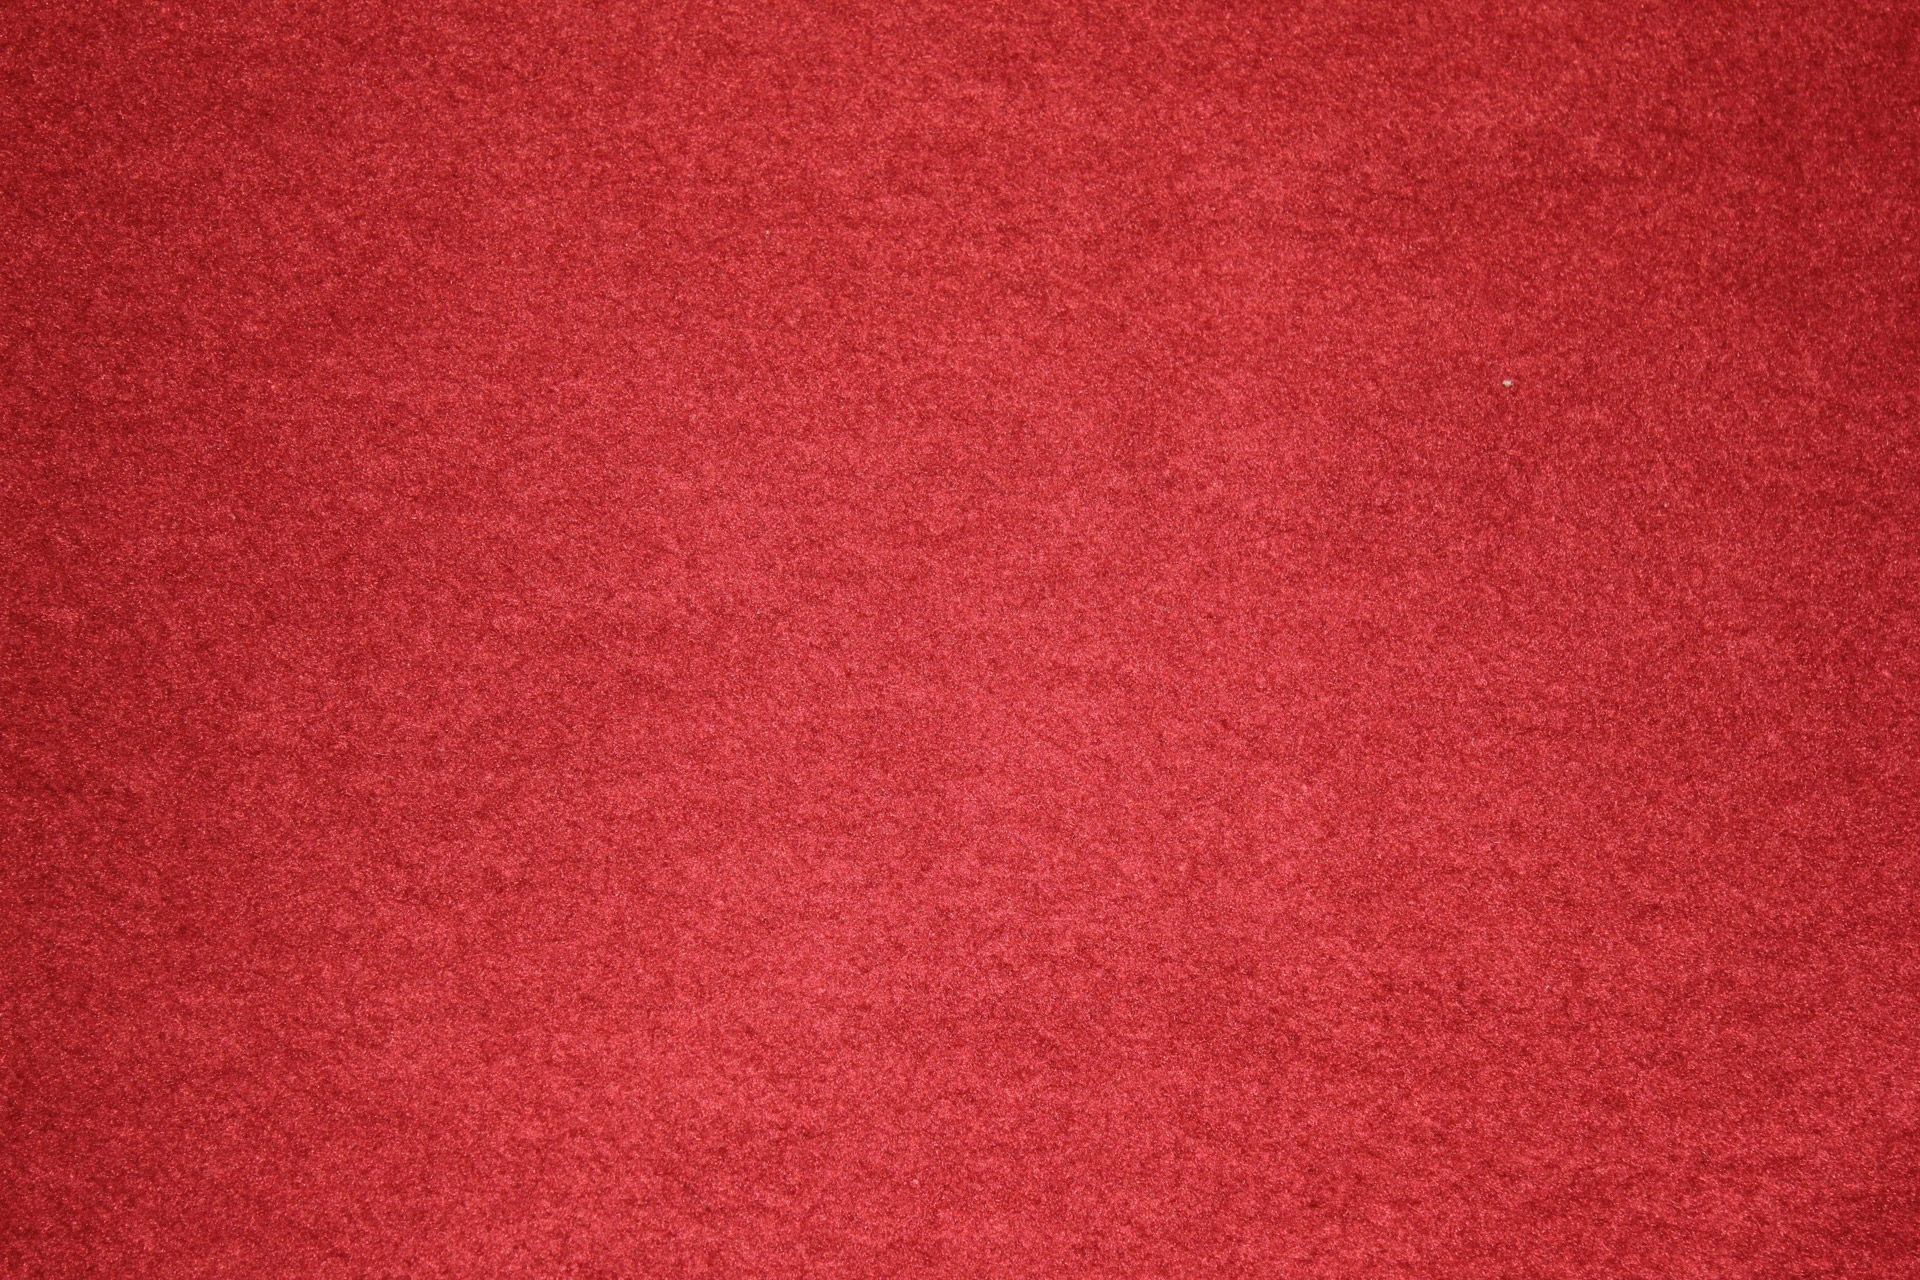 Red Texture Wallpapers Free For Desktop Wallpaper 1920 x 1280 px